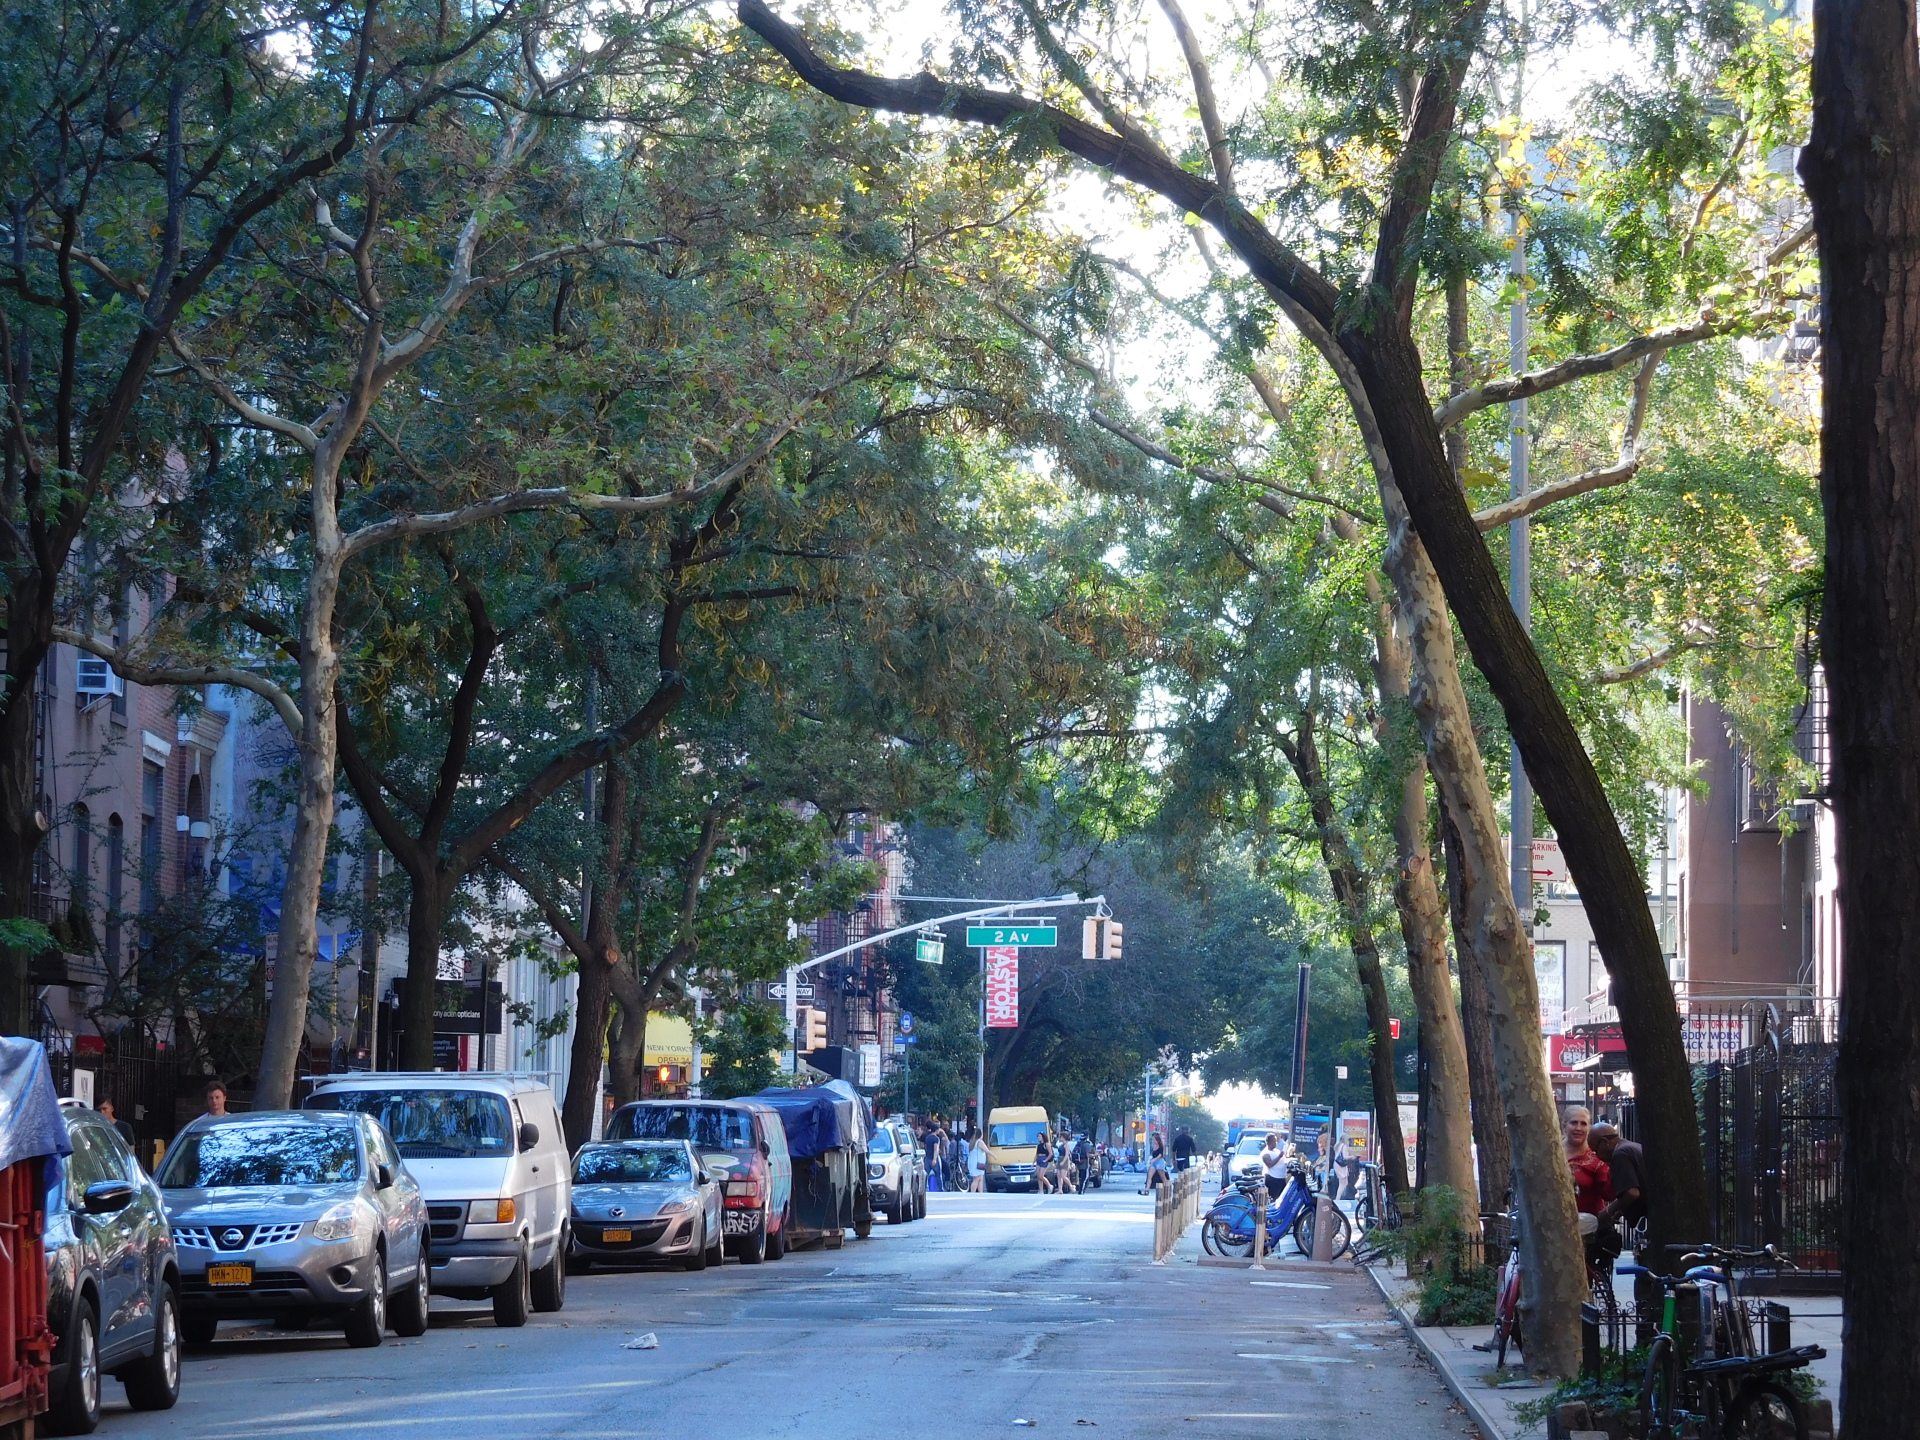 St. Marks Place (8th Street)